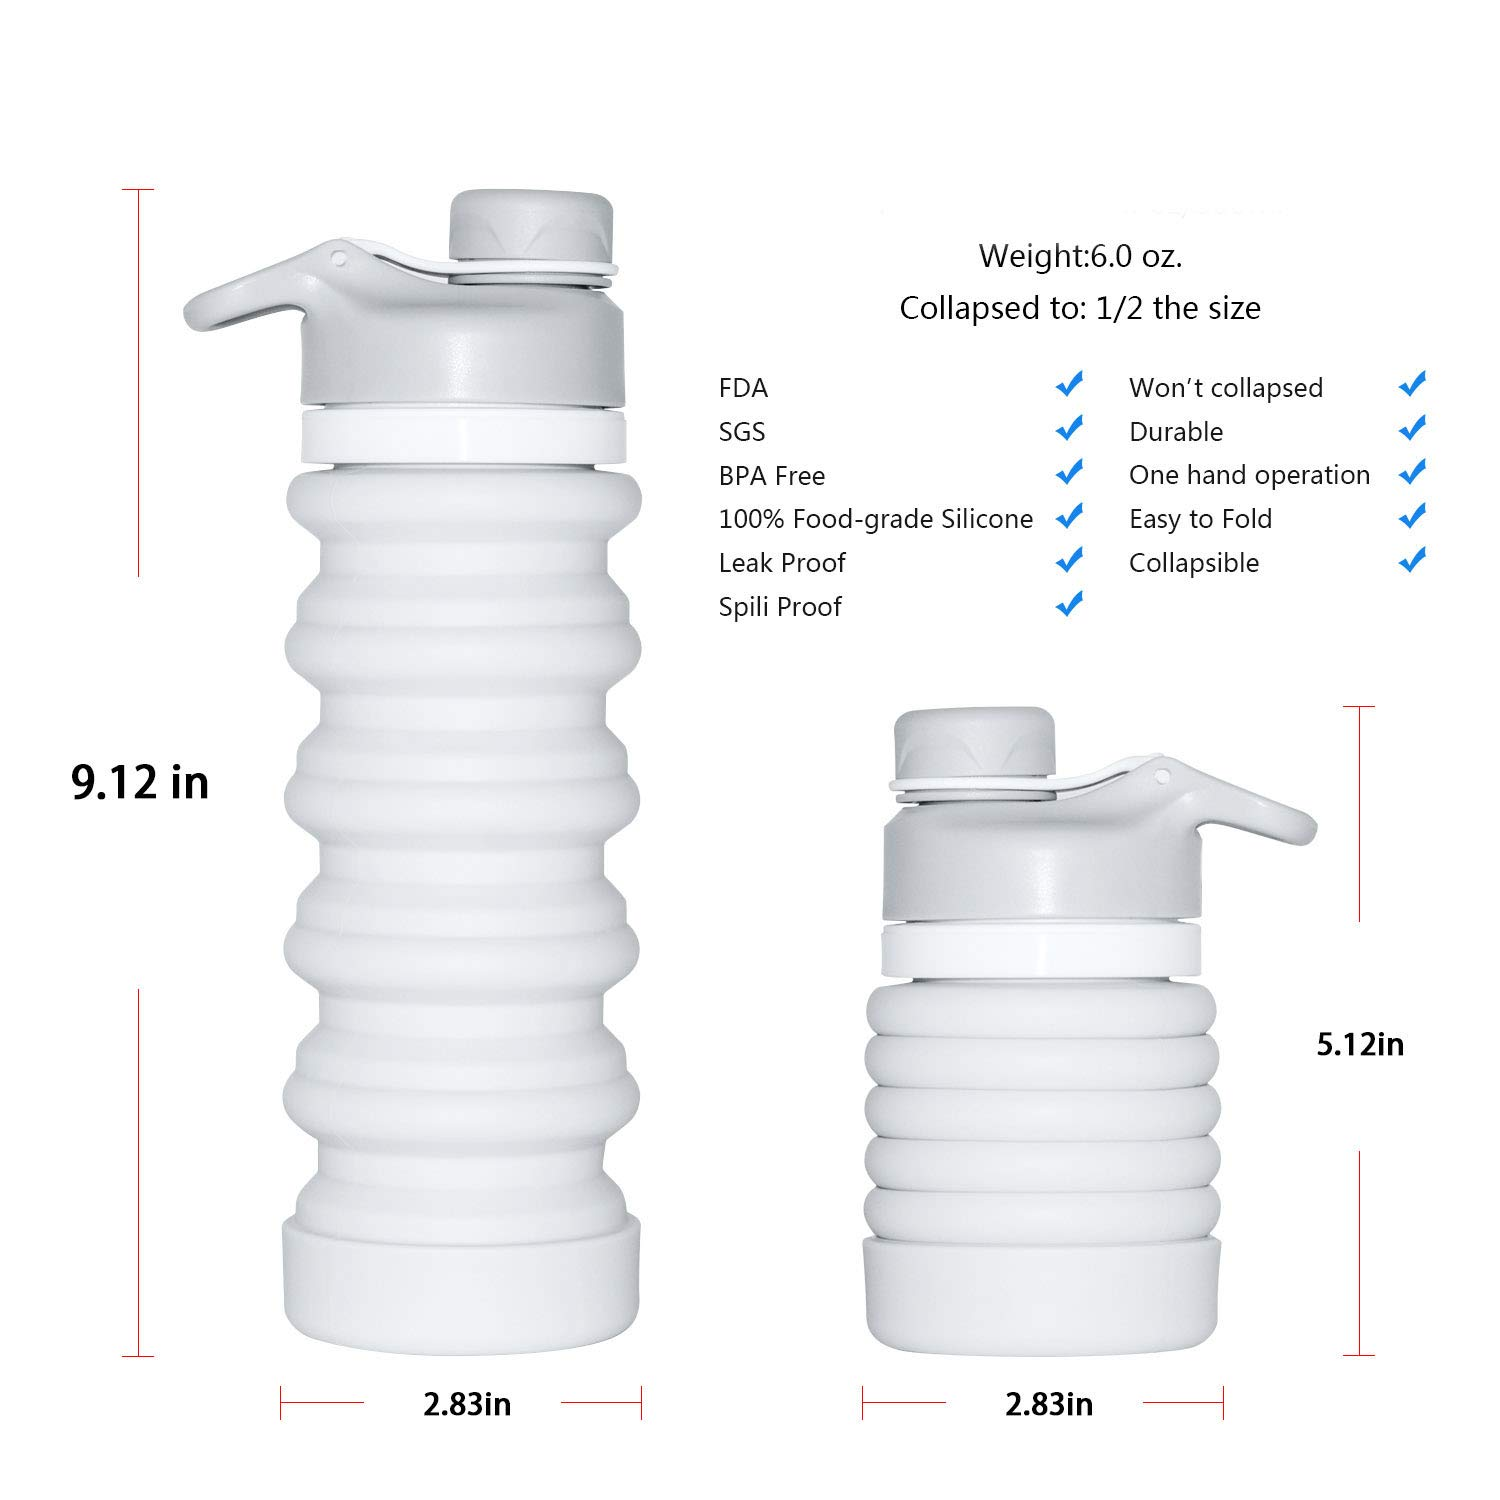 EVXVE Collapsible Water Bottle Portable Sport Water Bottle 32 oz Leak-Proof BPA Free 100% Food-Grade Silicone for Outdoor Indoor Travel Camping Hiking Cycling (Grey)